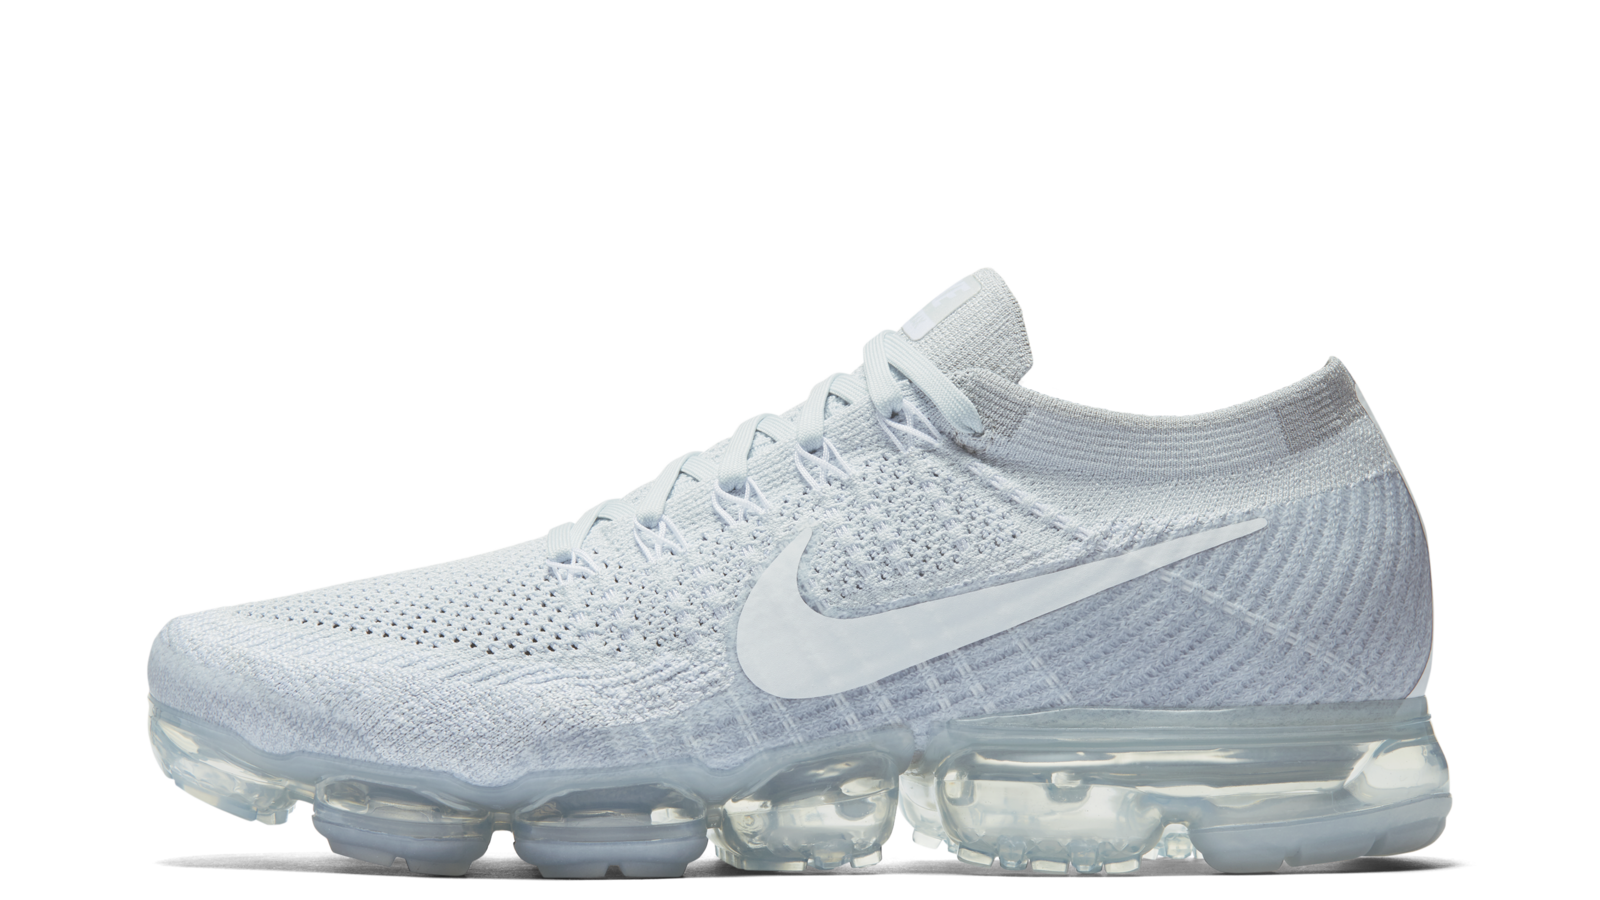 Nike Air VaporMax Reveals the Pinnacle of Air Nike News